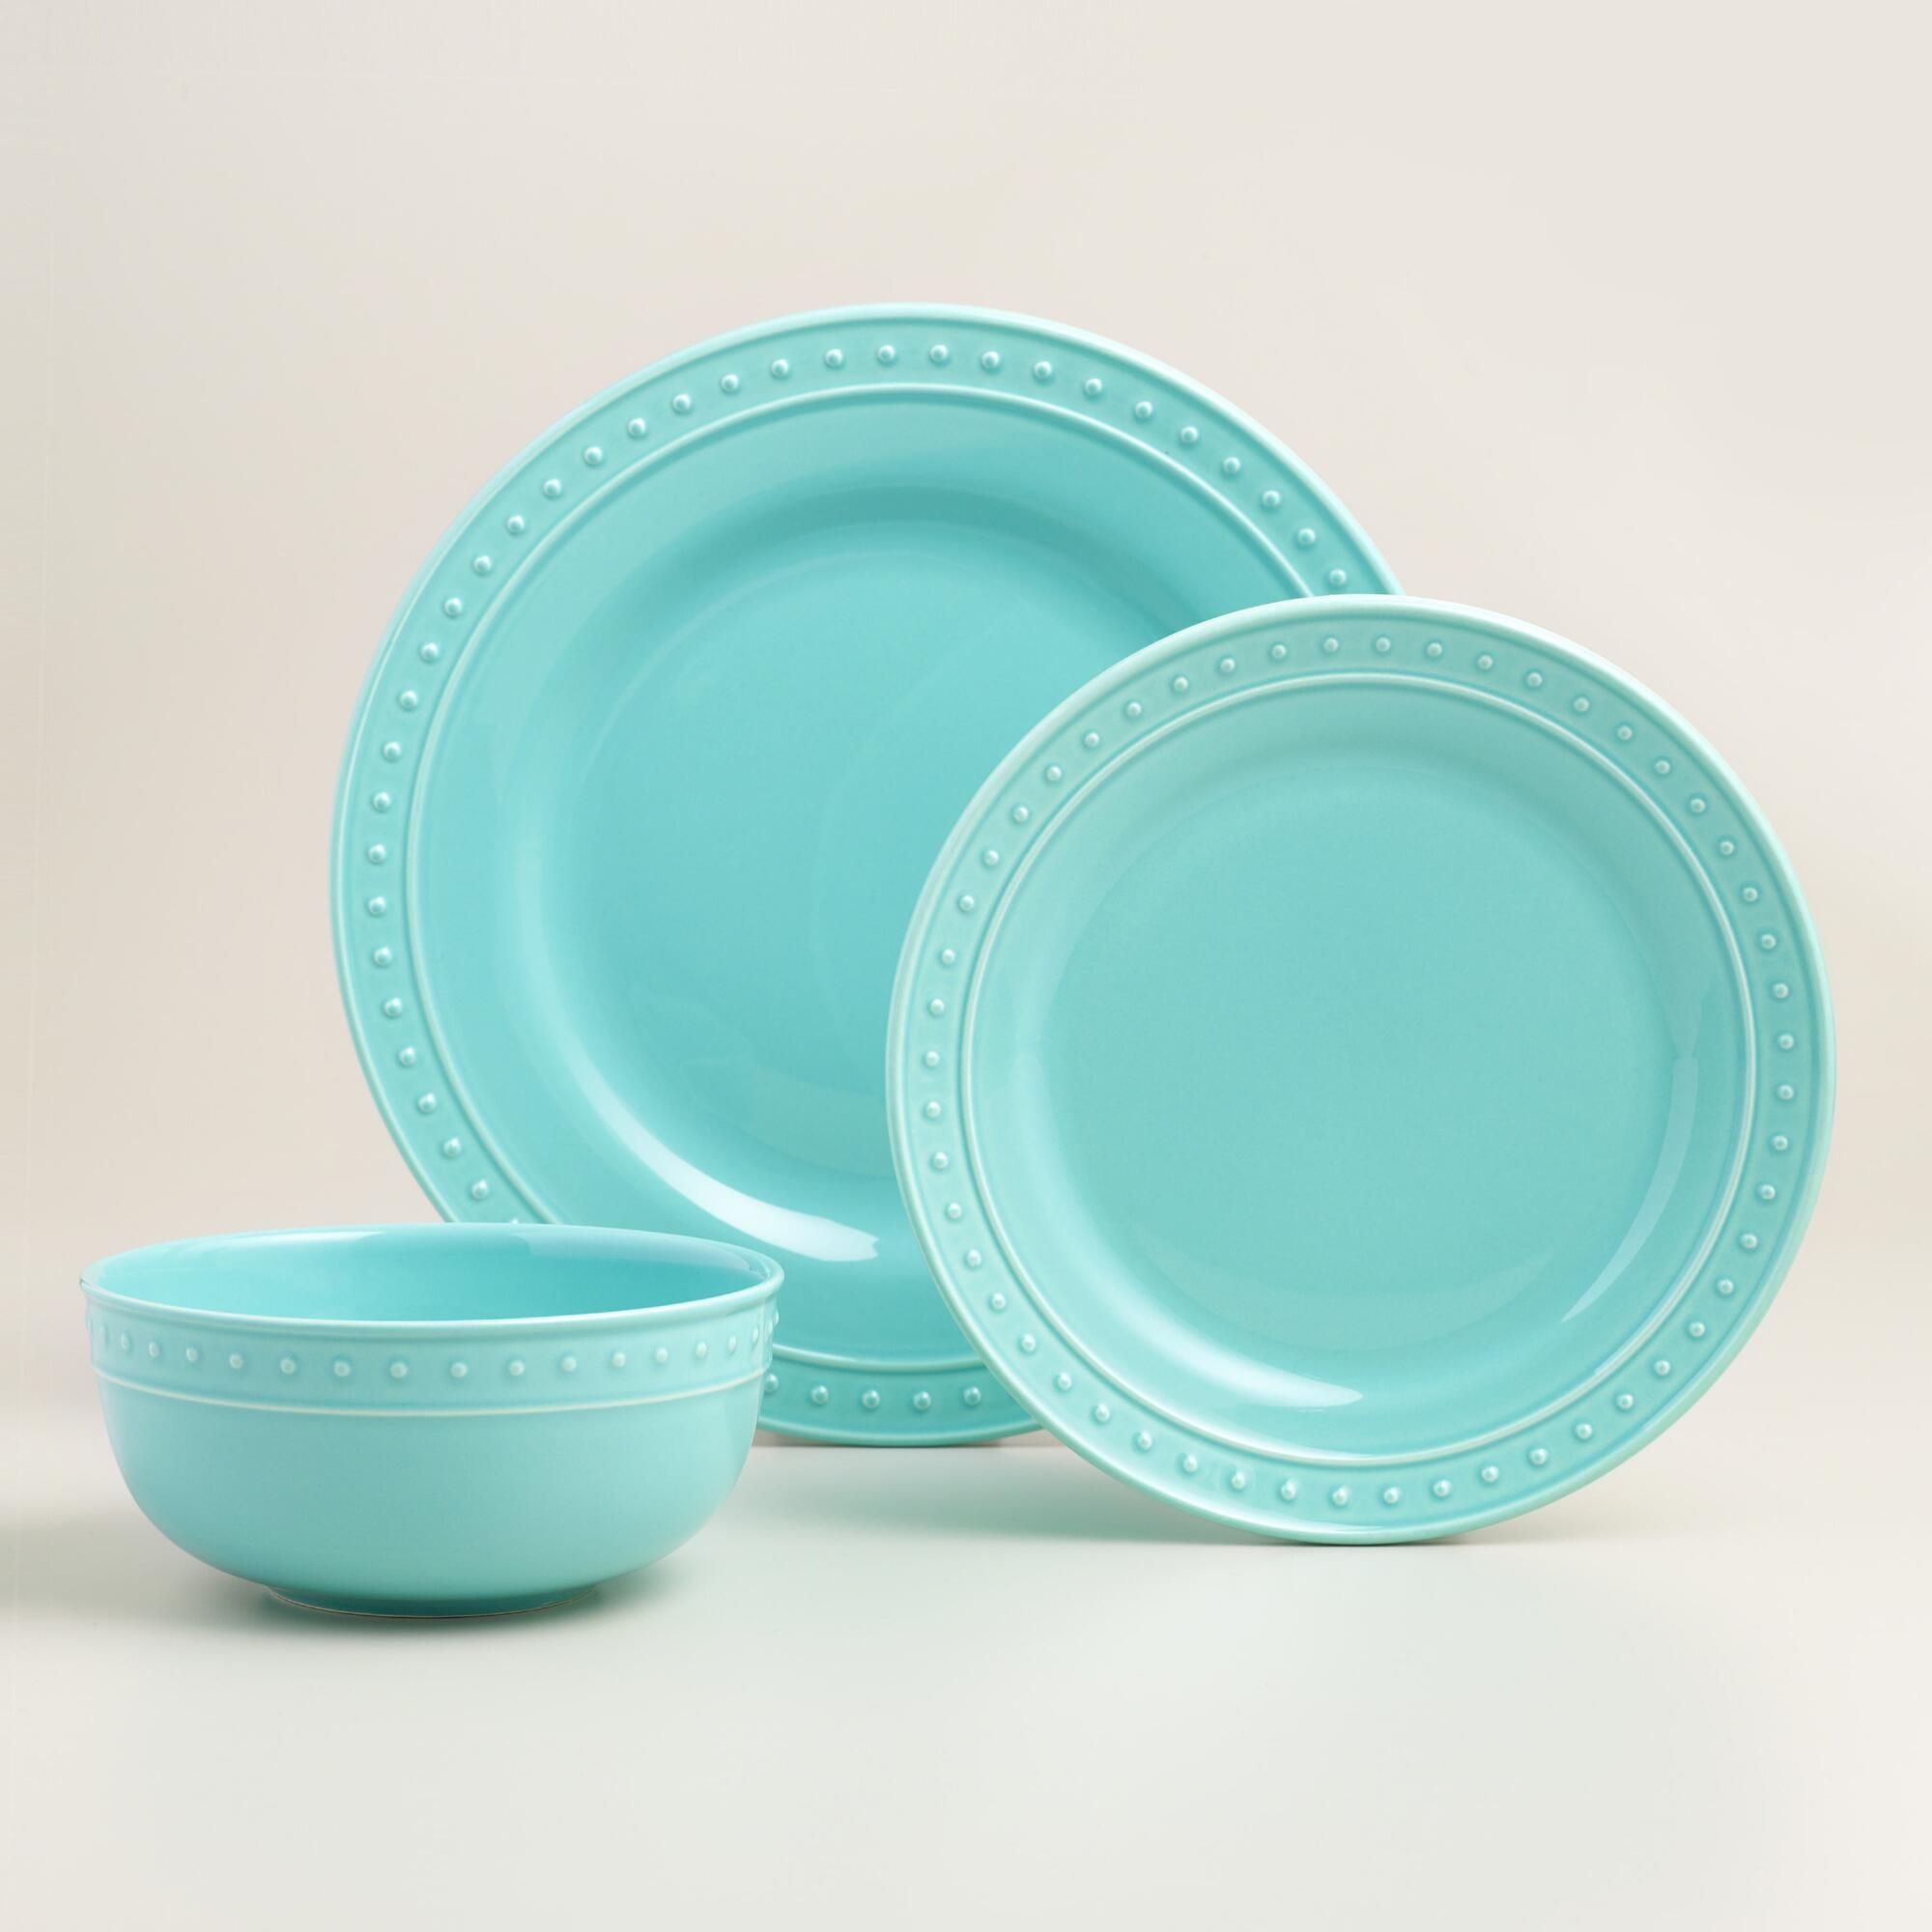 Aqua Nantucket Dinnerware | I Want That! | Pinterest